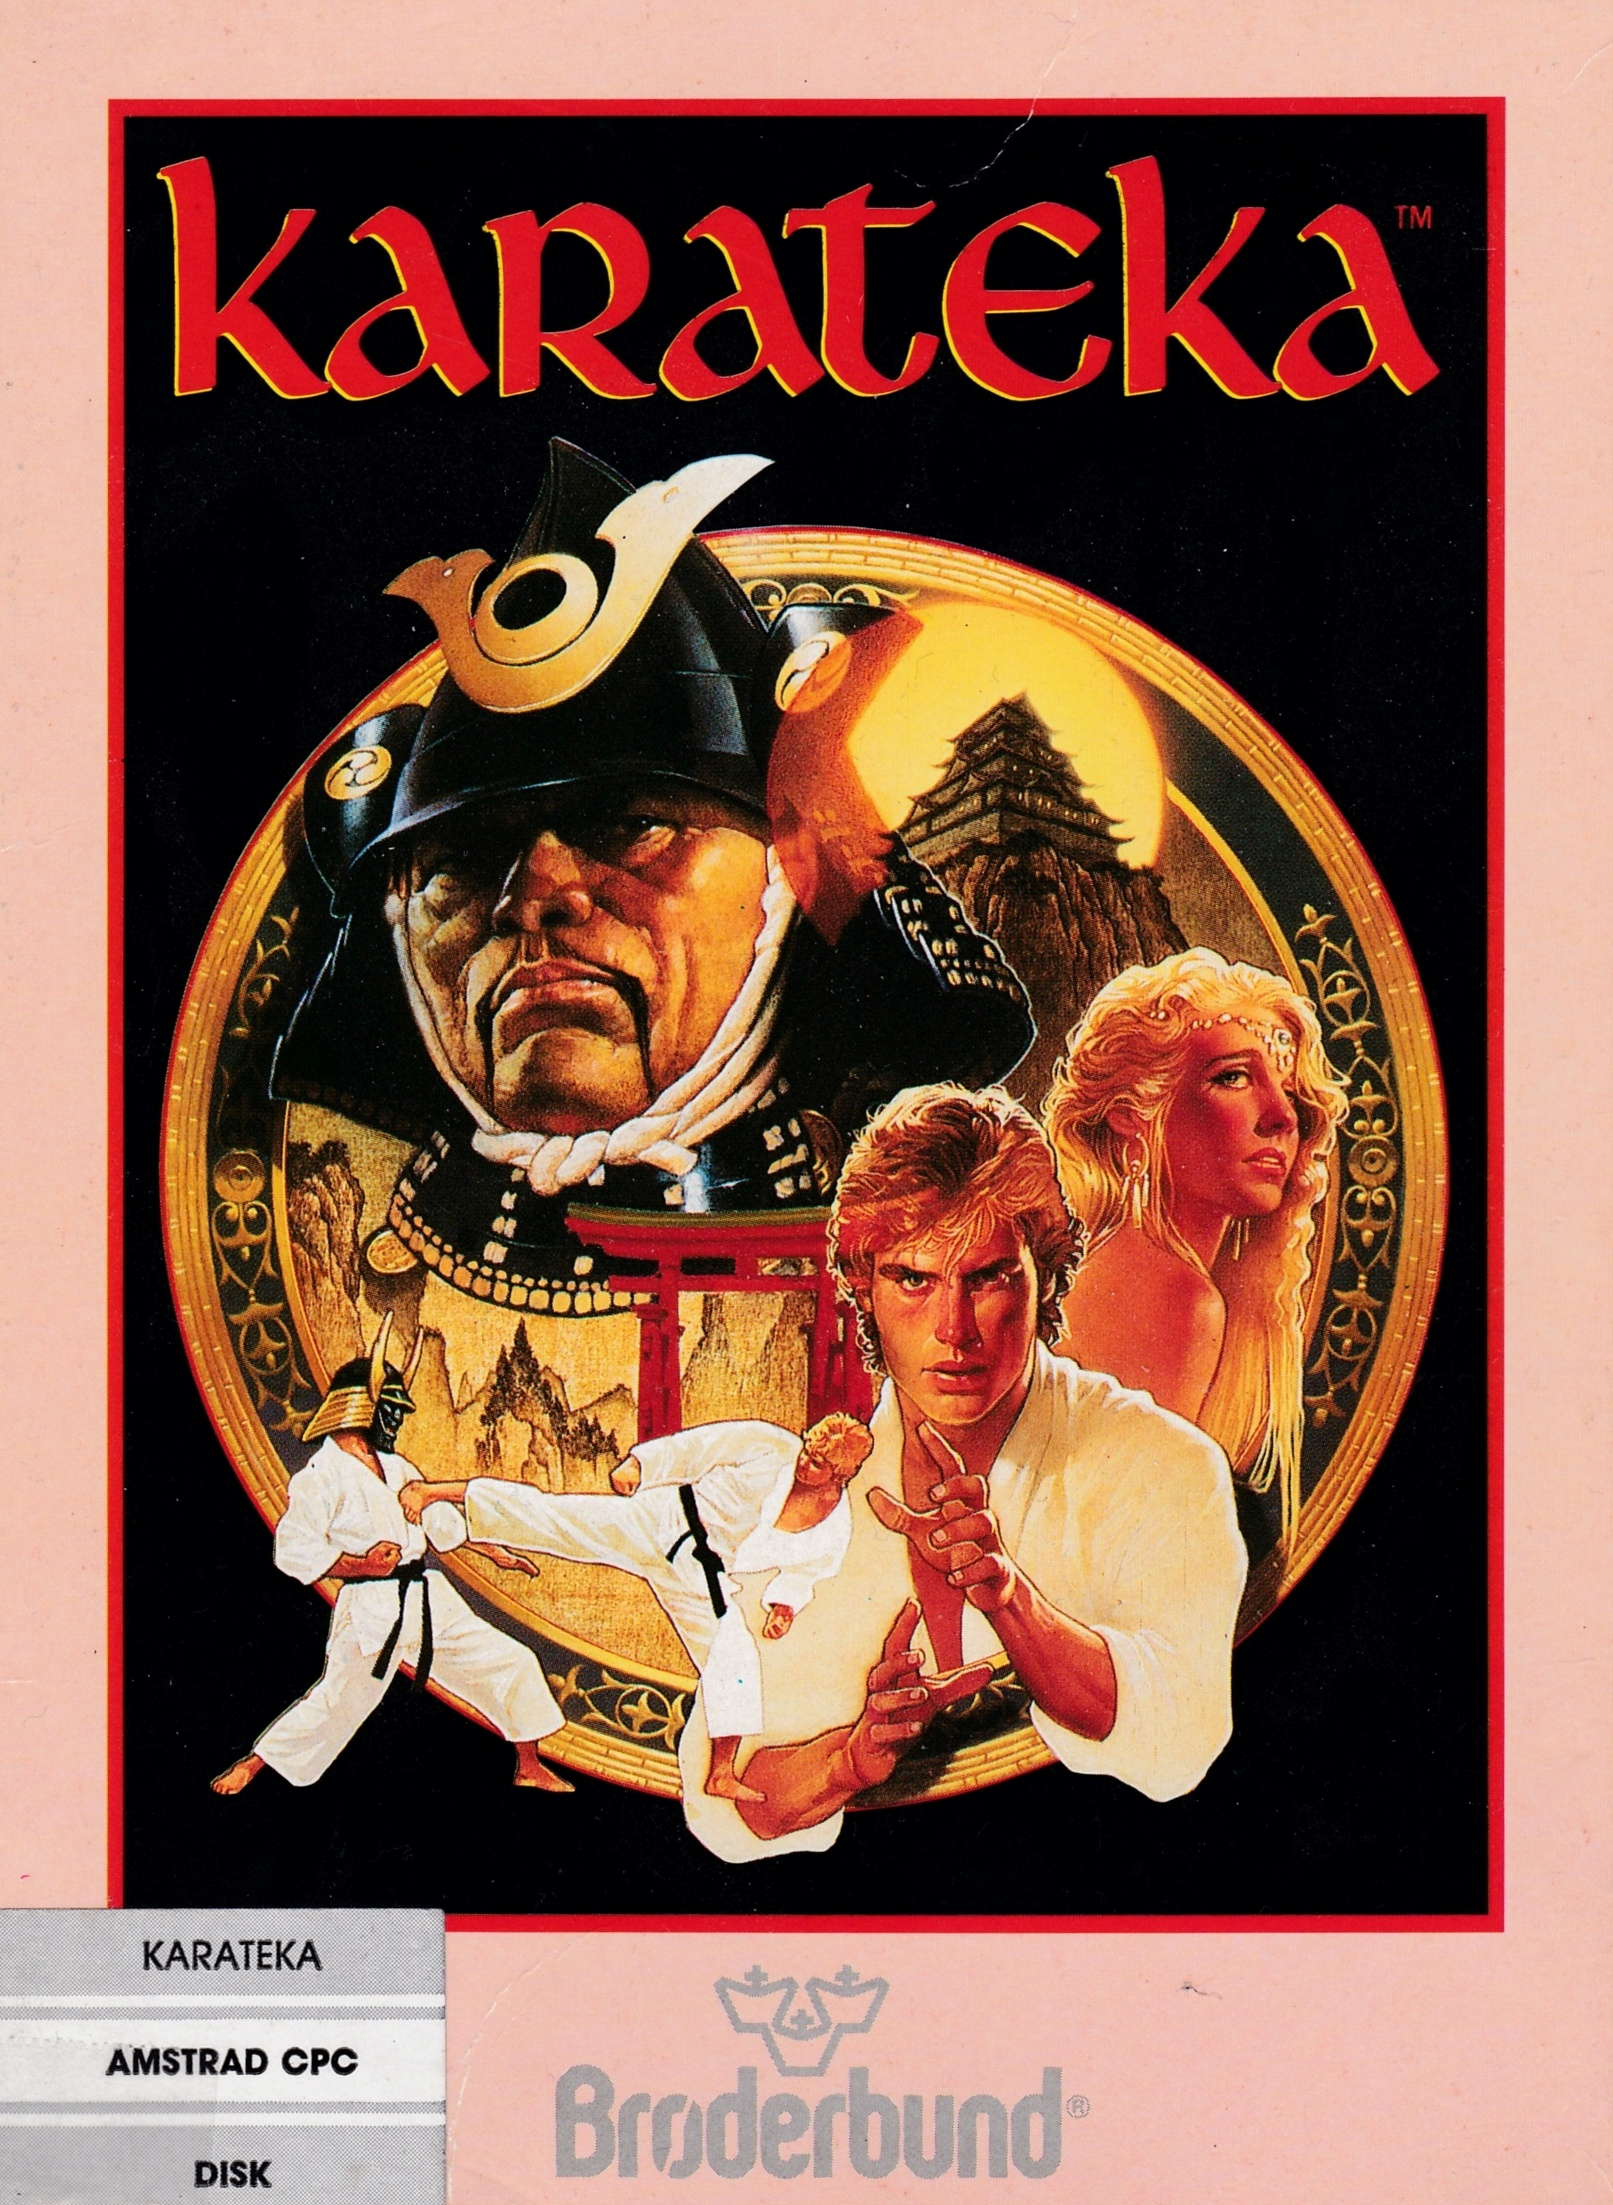 cover of the Amstrad CPC game Karateka  by GameBase CPC